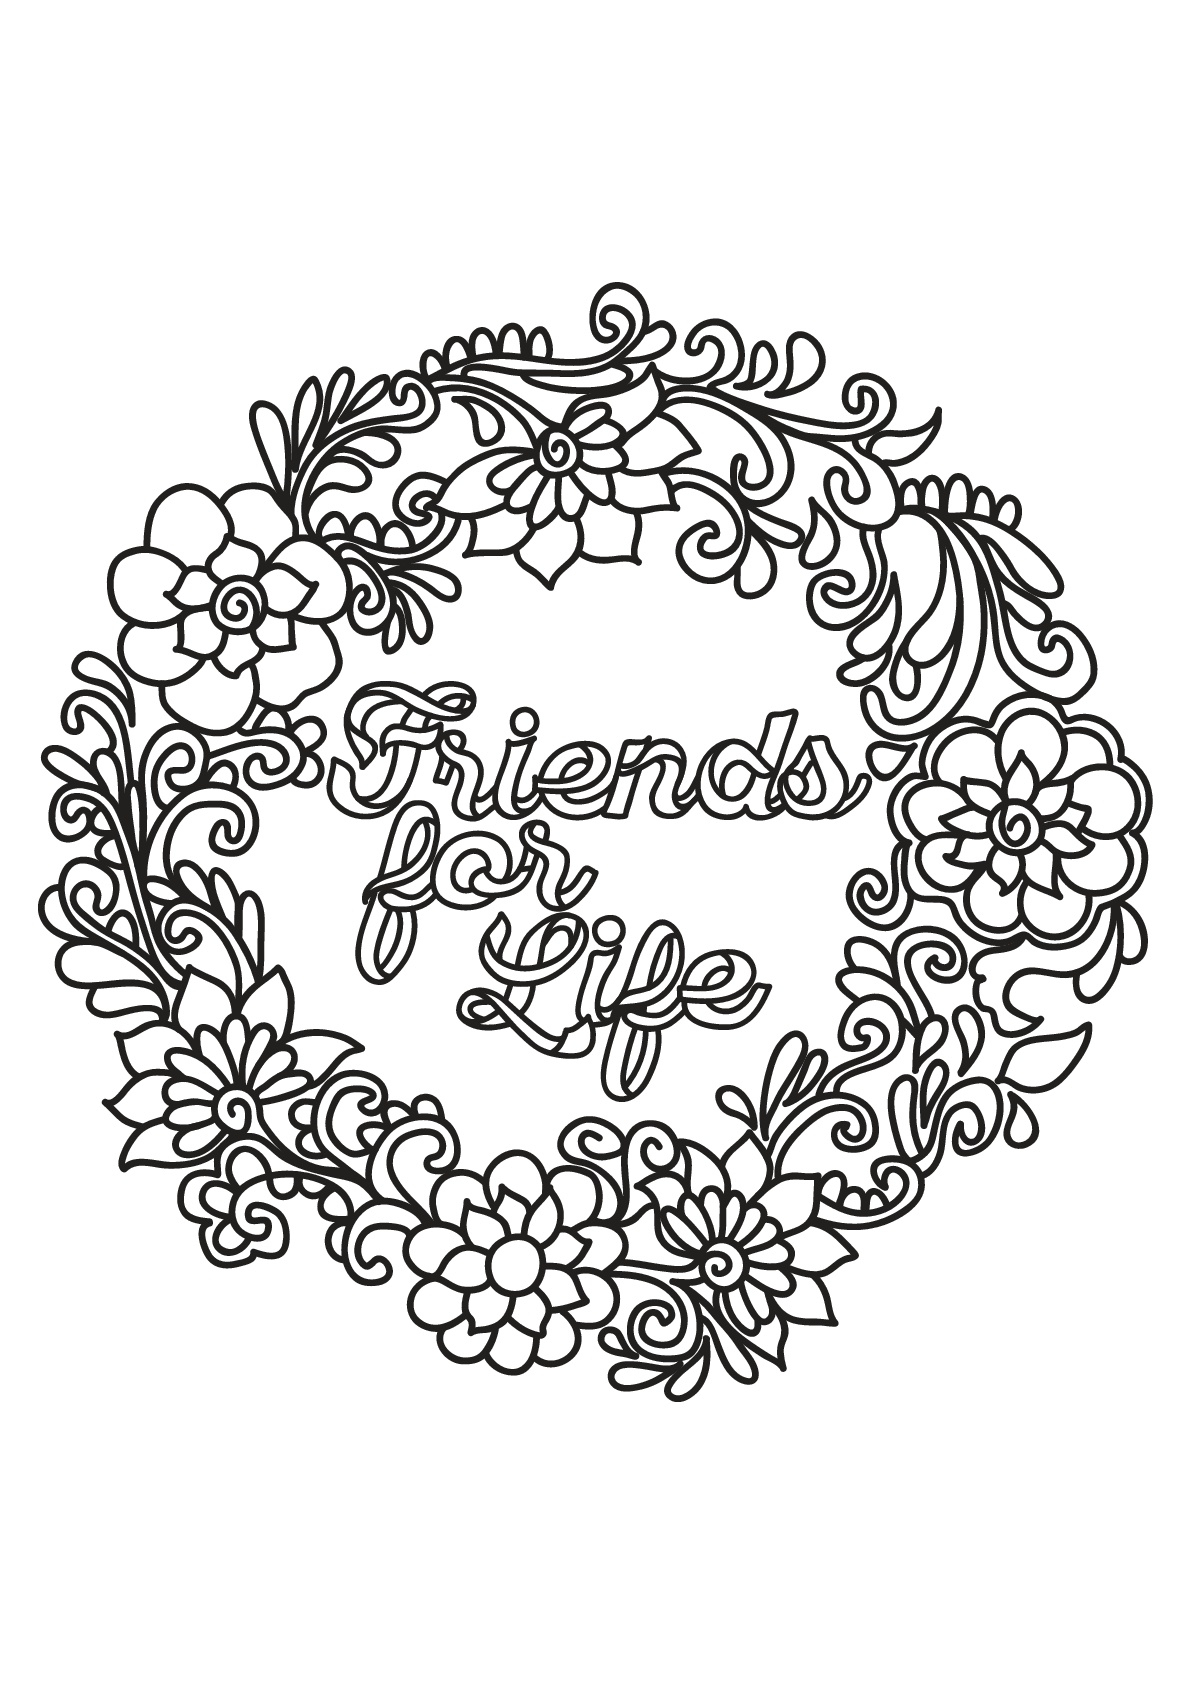 Quotes - Coloring Pages For Adults - Free Printable Quote Coloring Pages For Adults